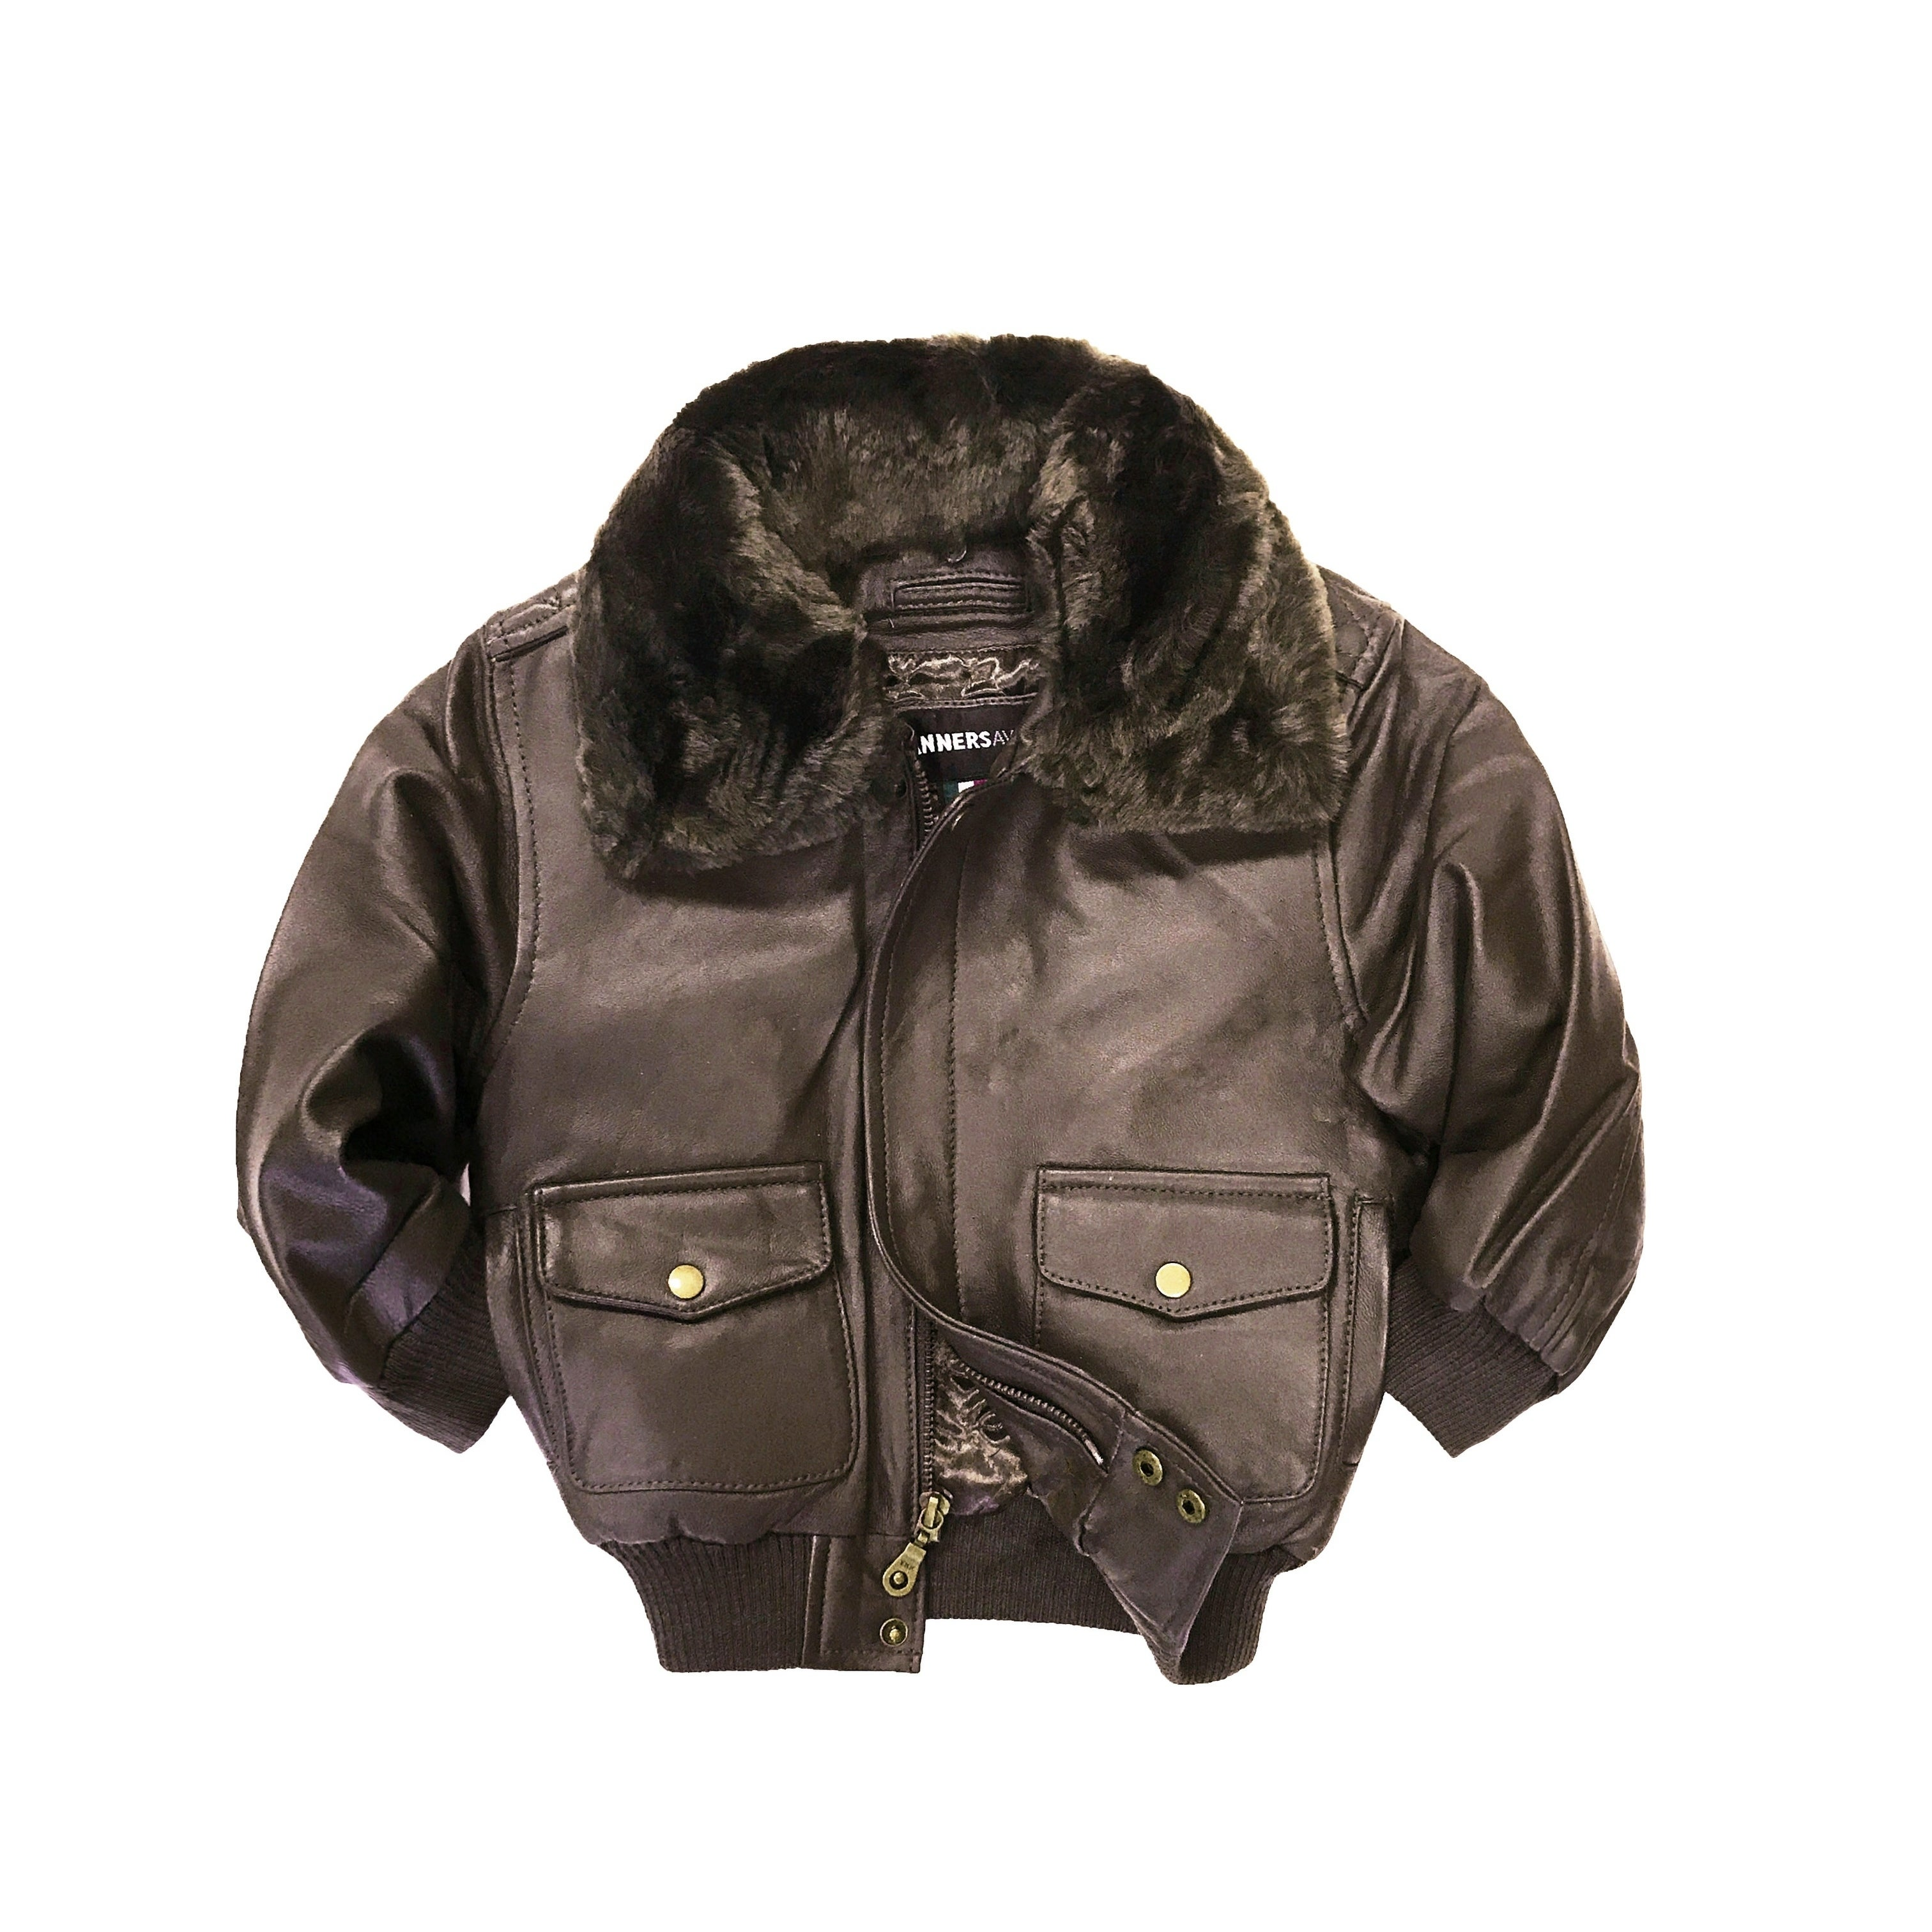 96326658c356 Shop Brown Kid s Genuine Leather Pilot Jacket - Free Shipping On ...